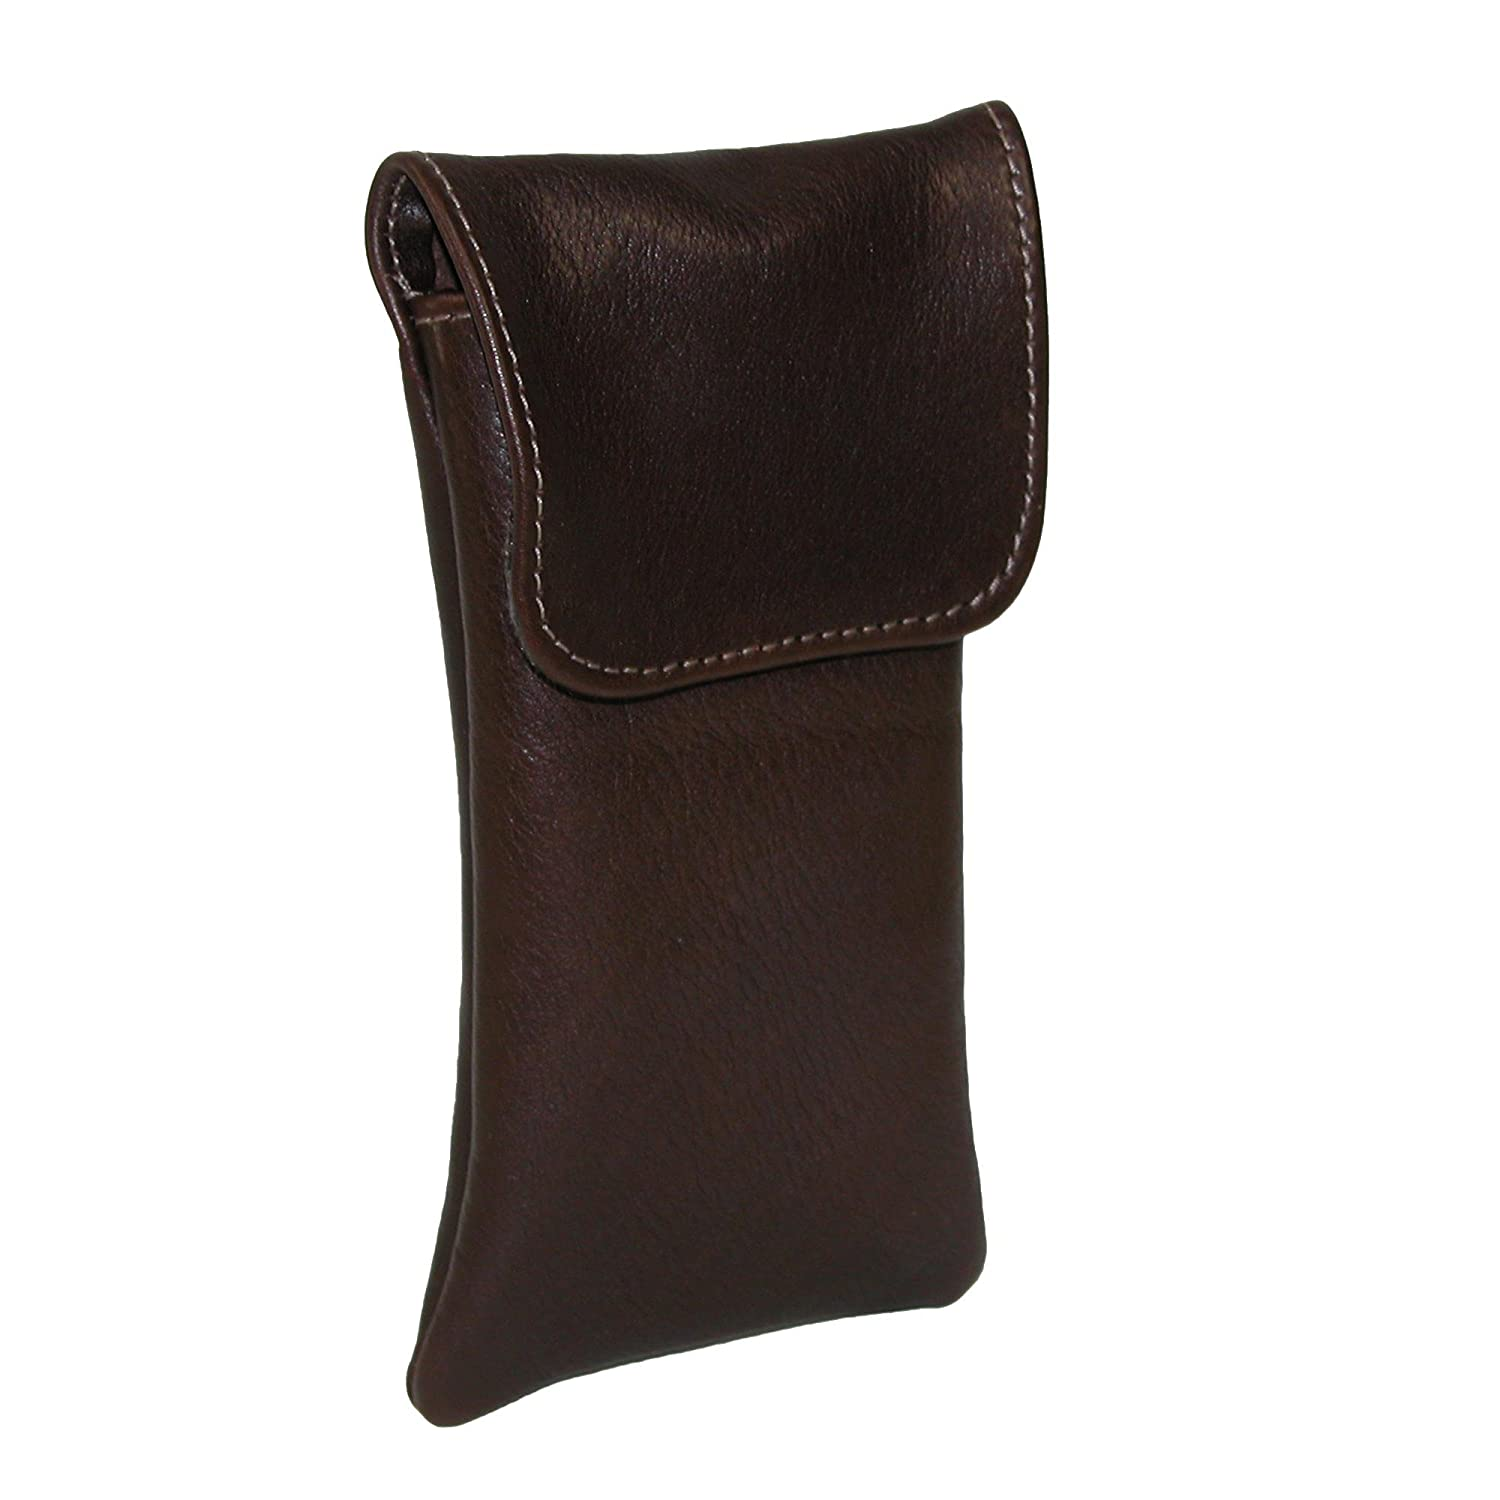 CTM® Leather Soft Eyeglass Case with Holster Clip, Brown NS-524-BRN